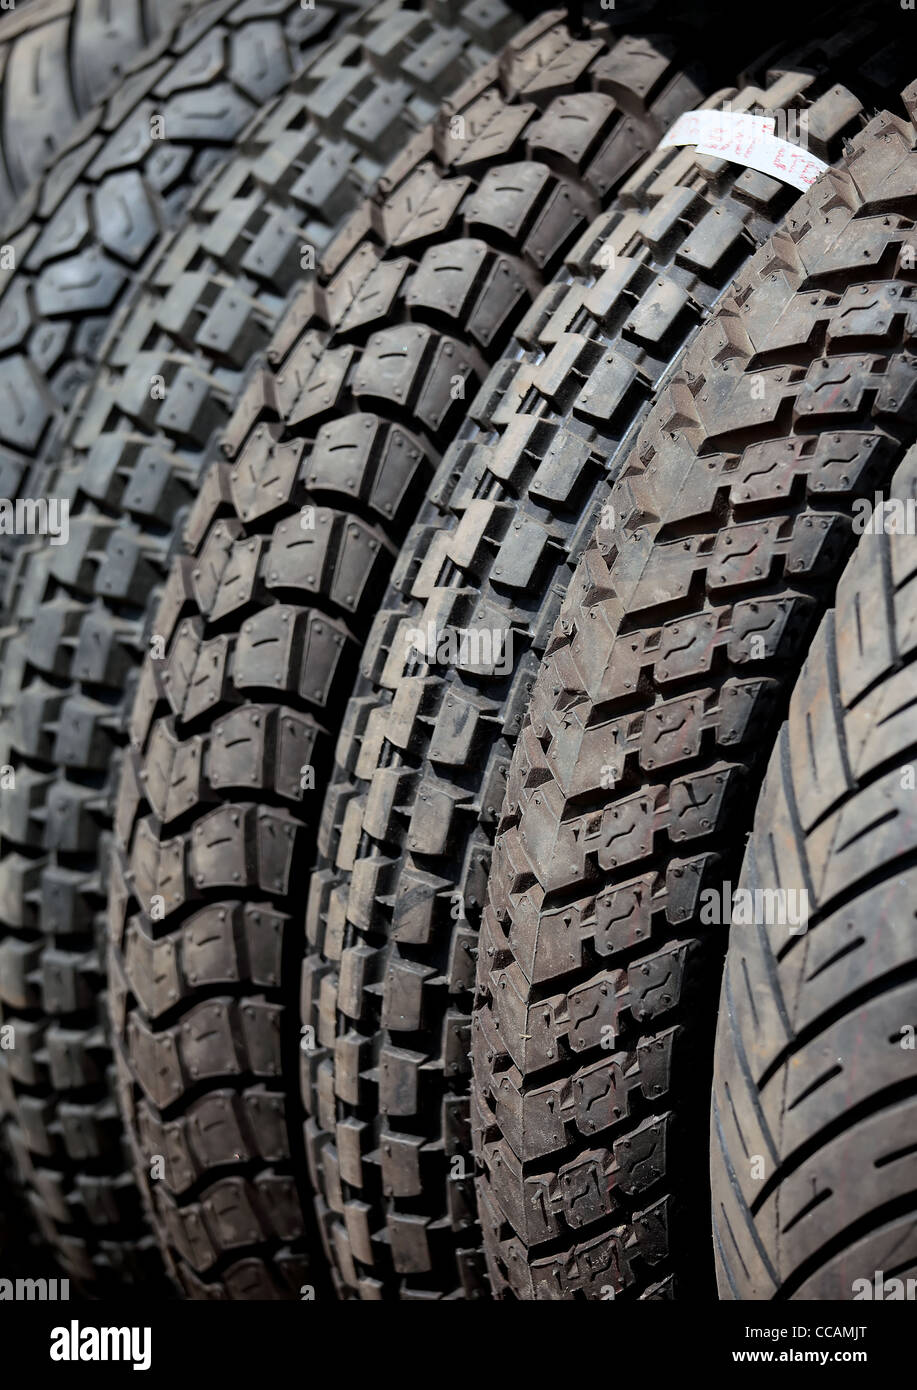 New, well-treaded heavy vehicle tyres.Rubber,tyres,automobile,accessory,treaded,tread - Stock Image